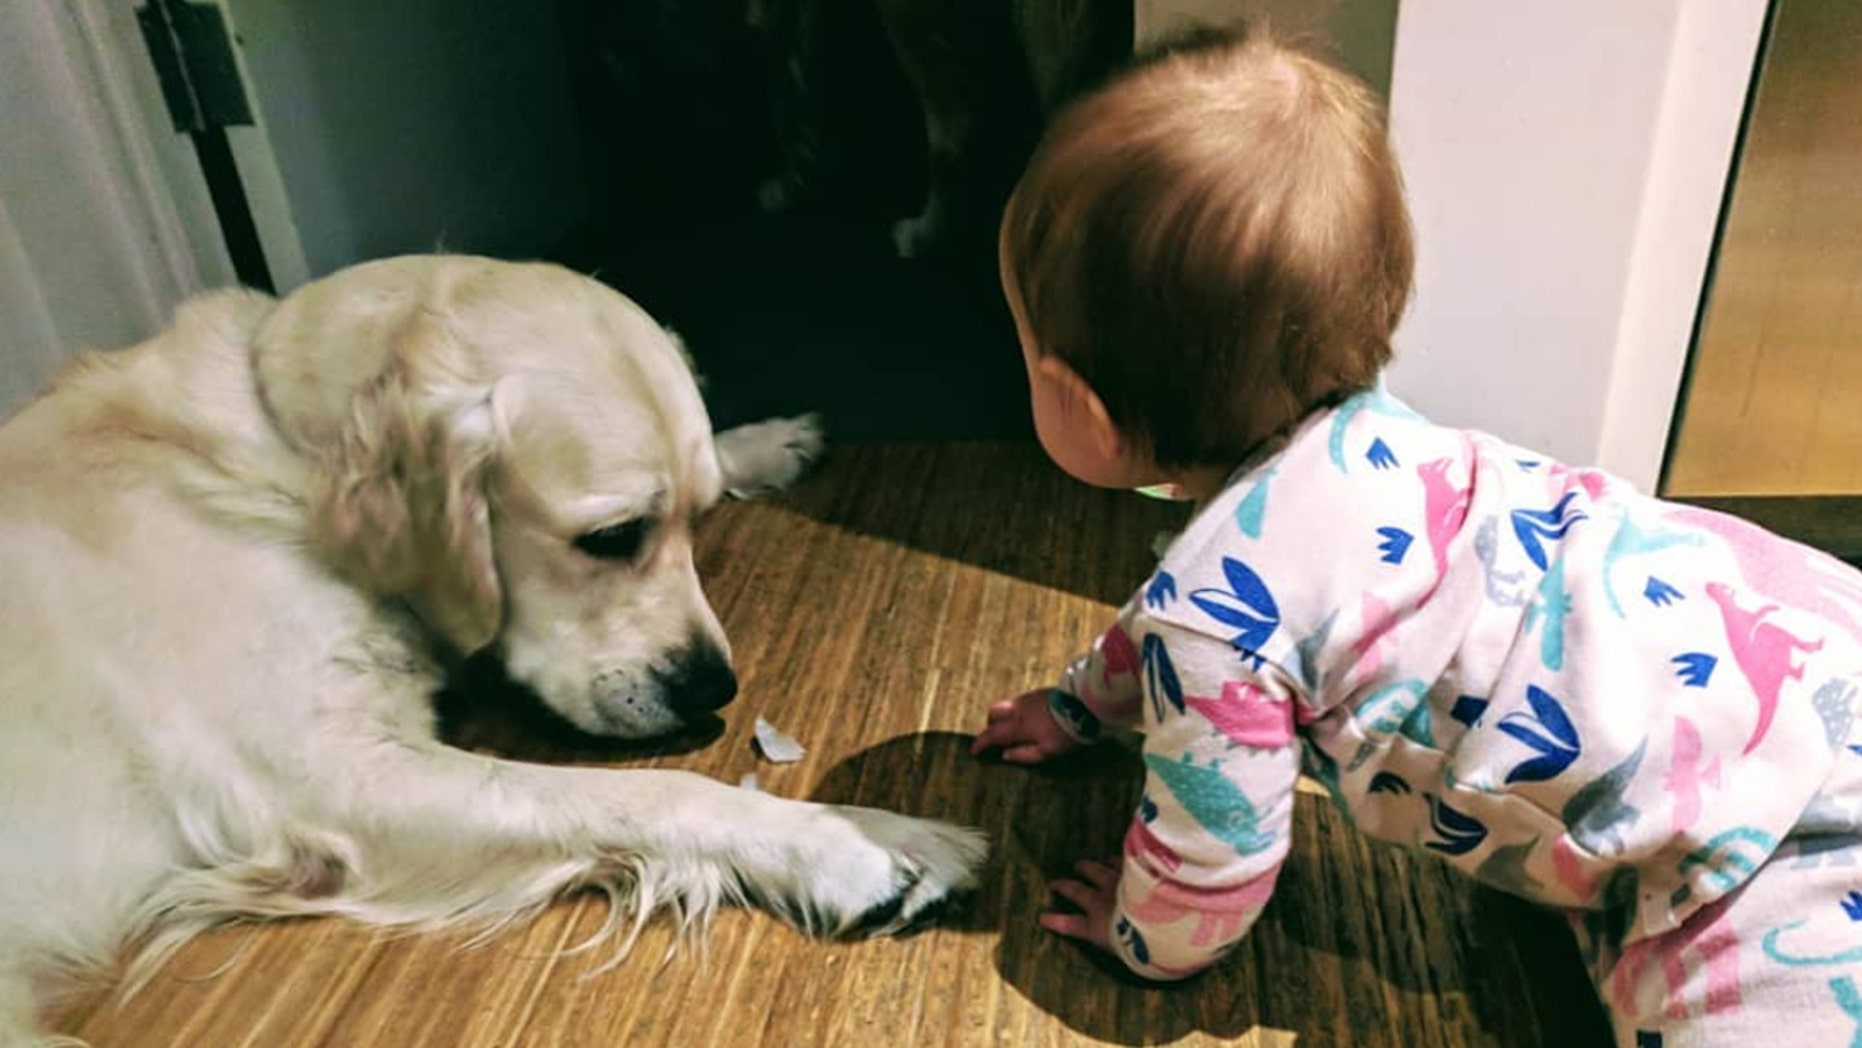 Two golden retrievers helped a toddler escape her bedroom.